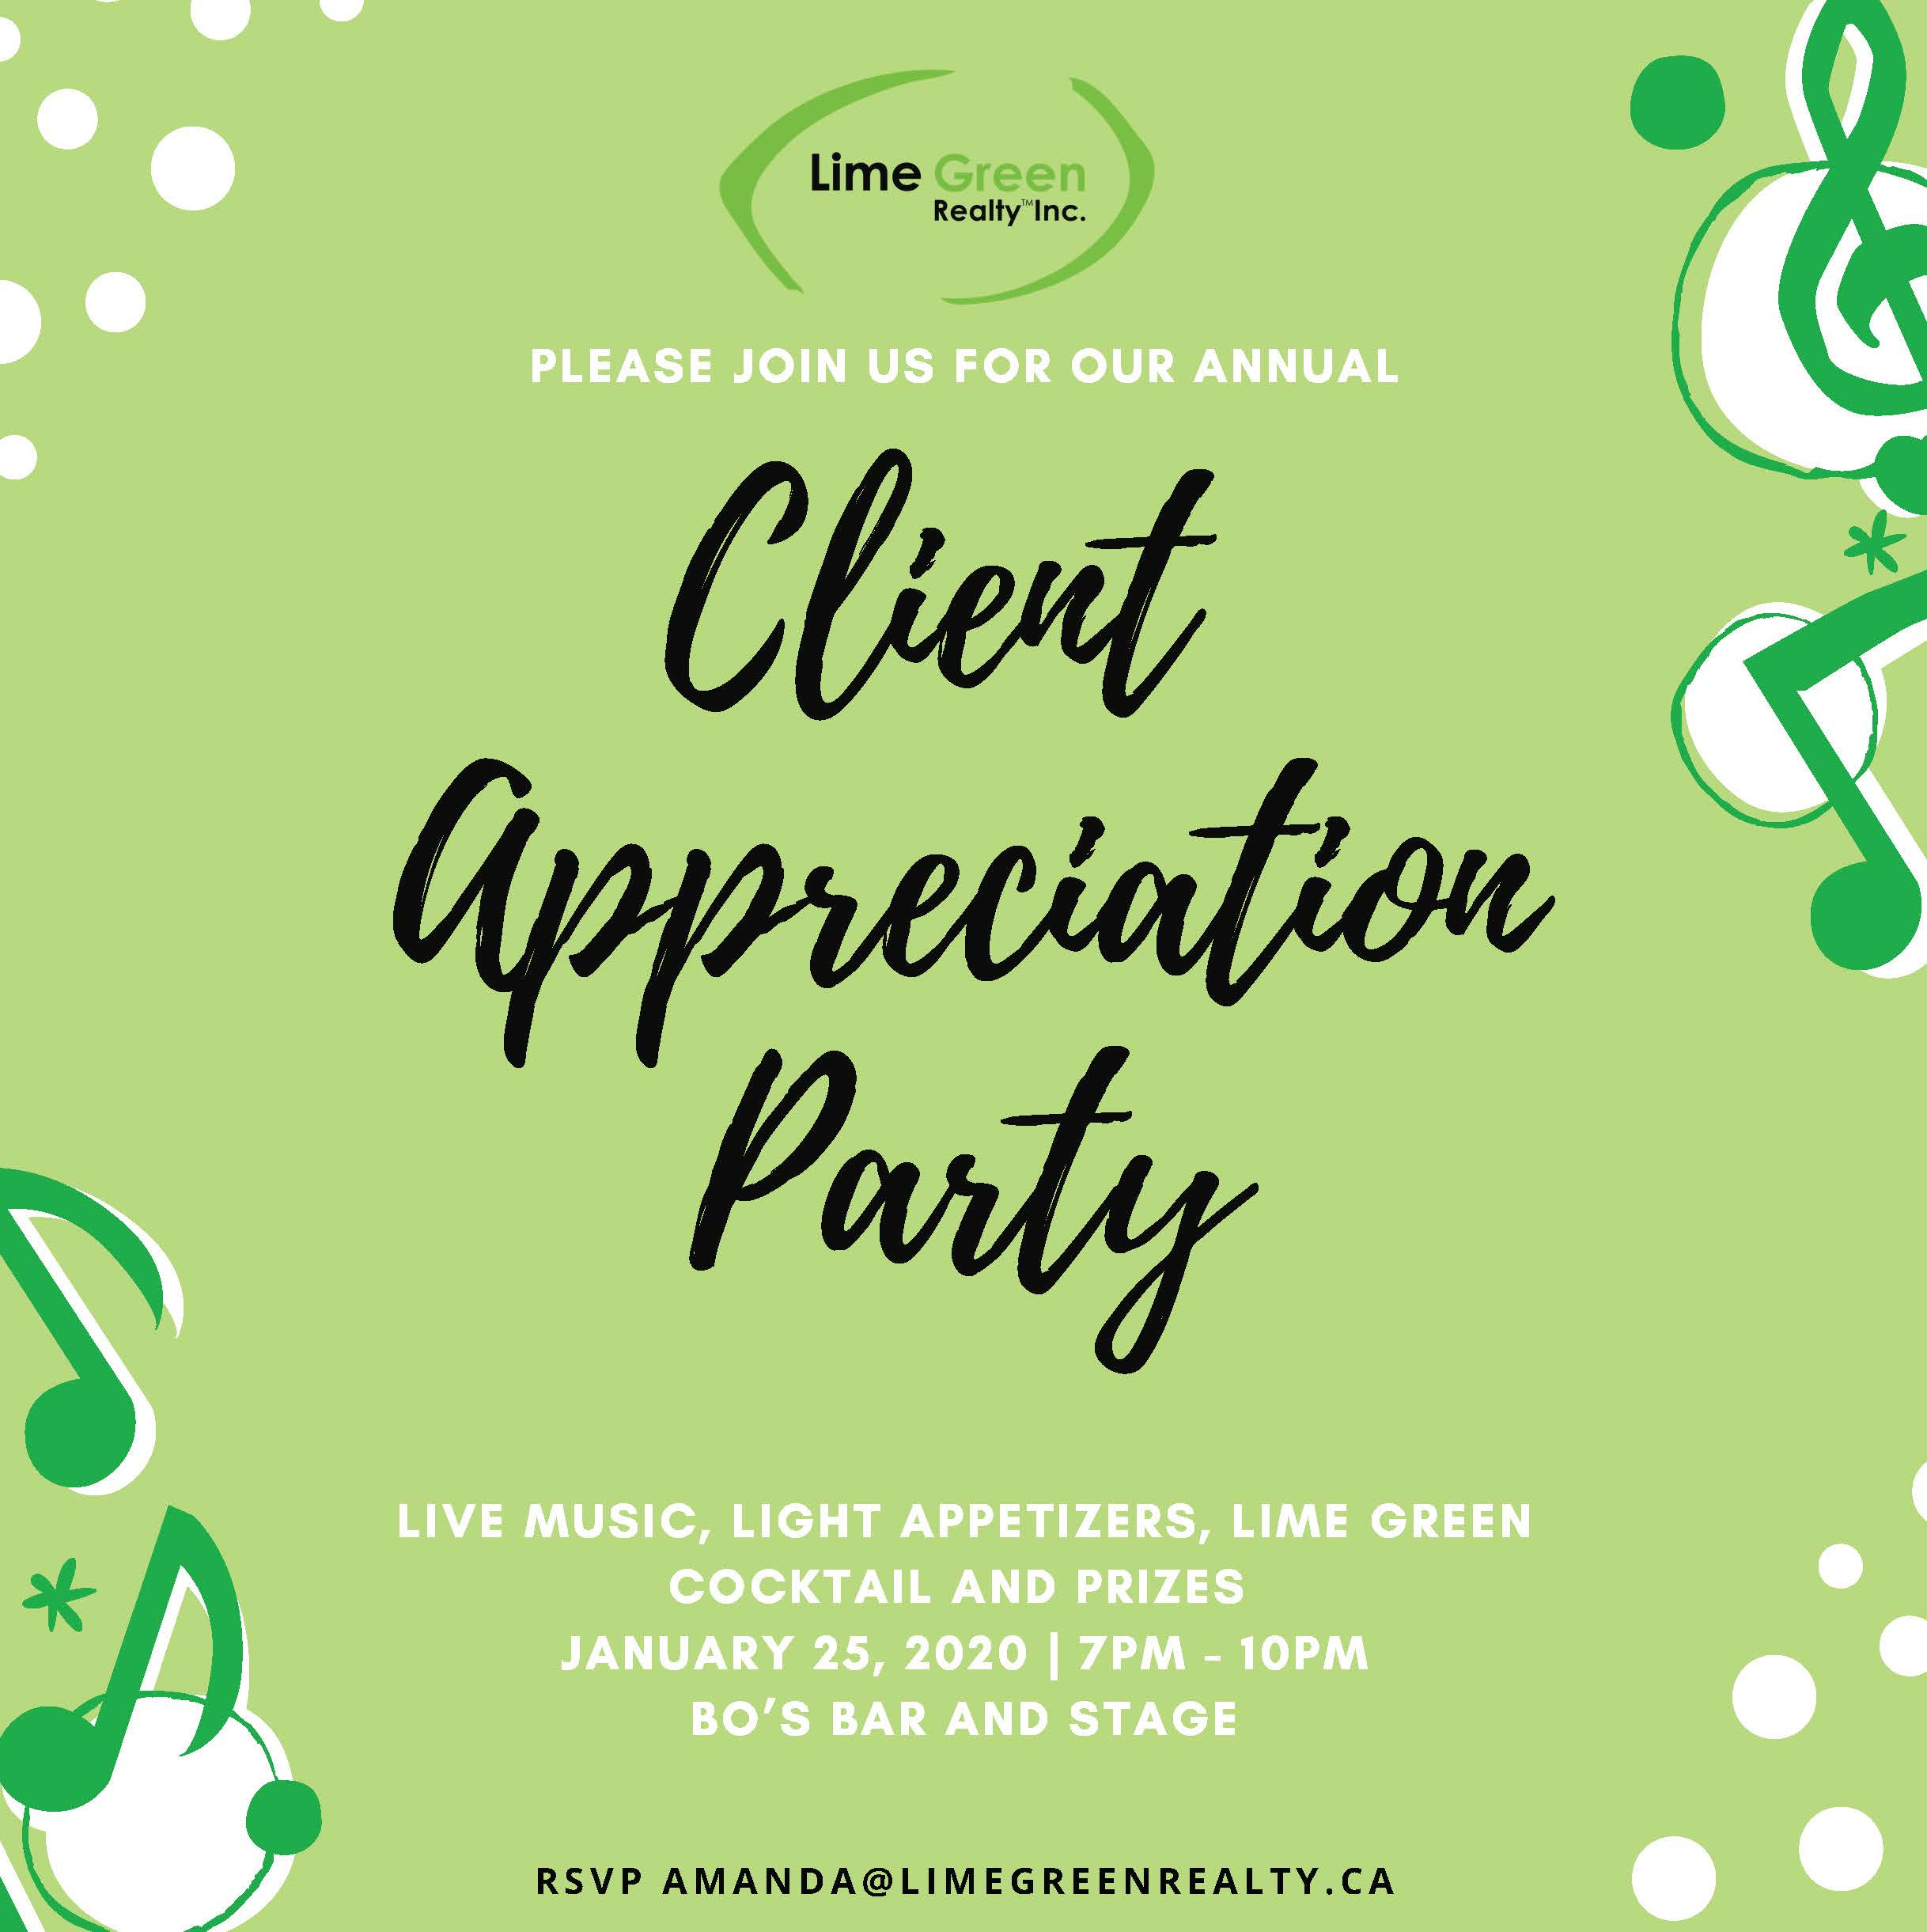 Annual Client Appreciation Party Invitation - Front